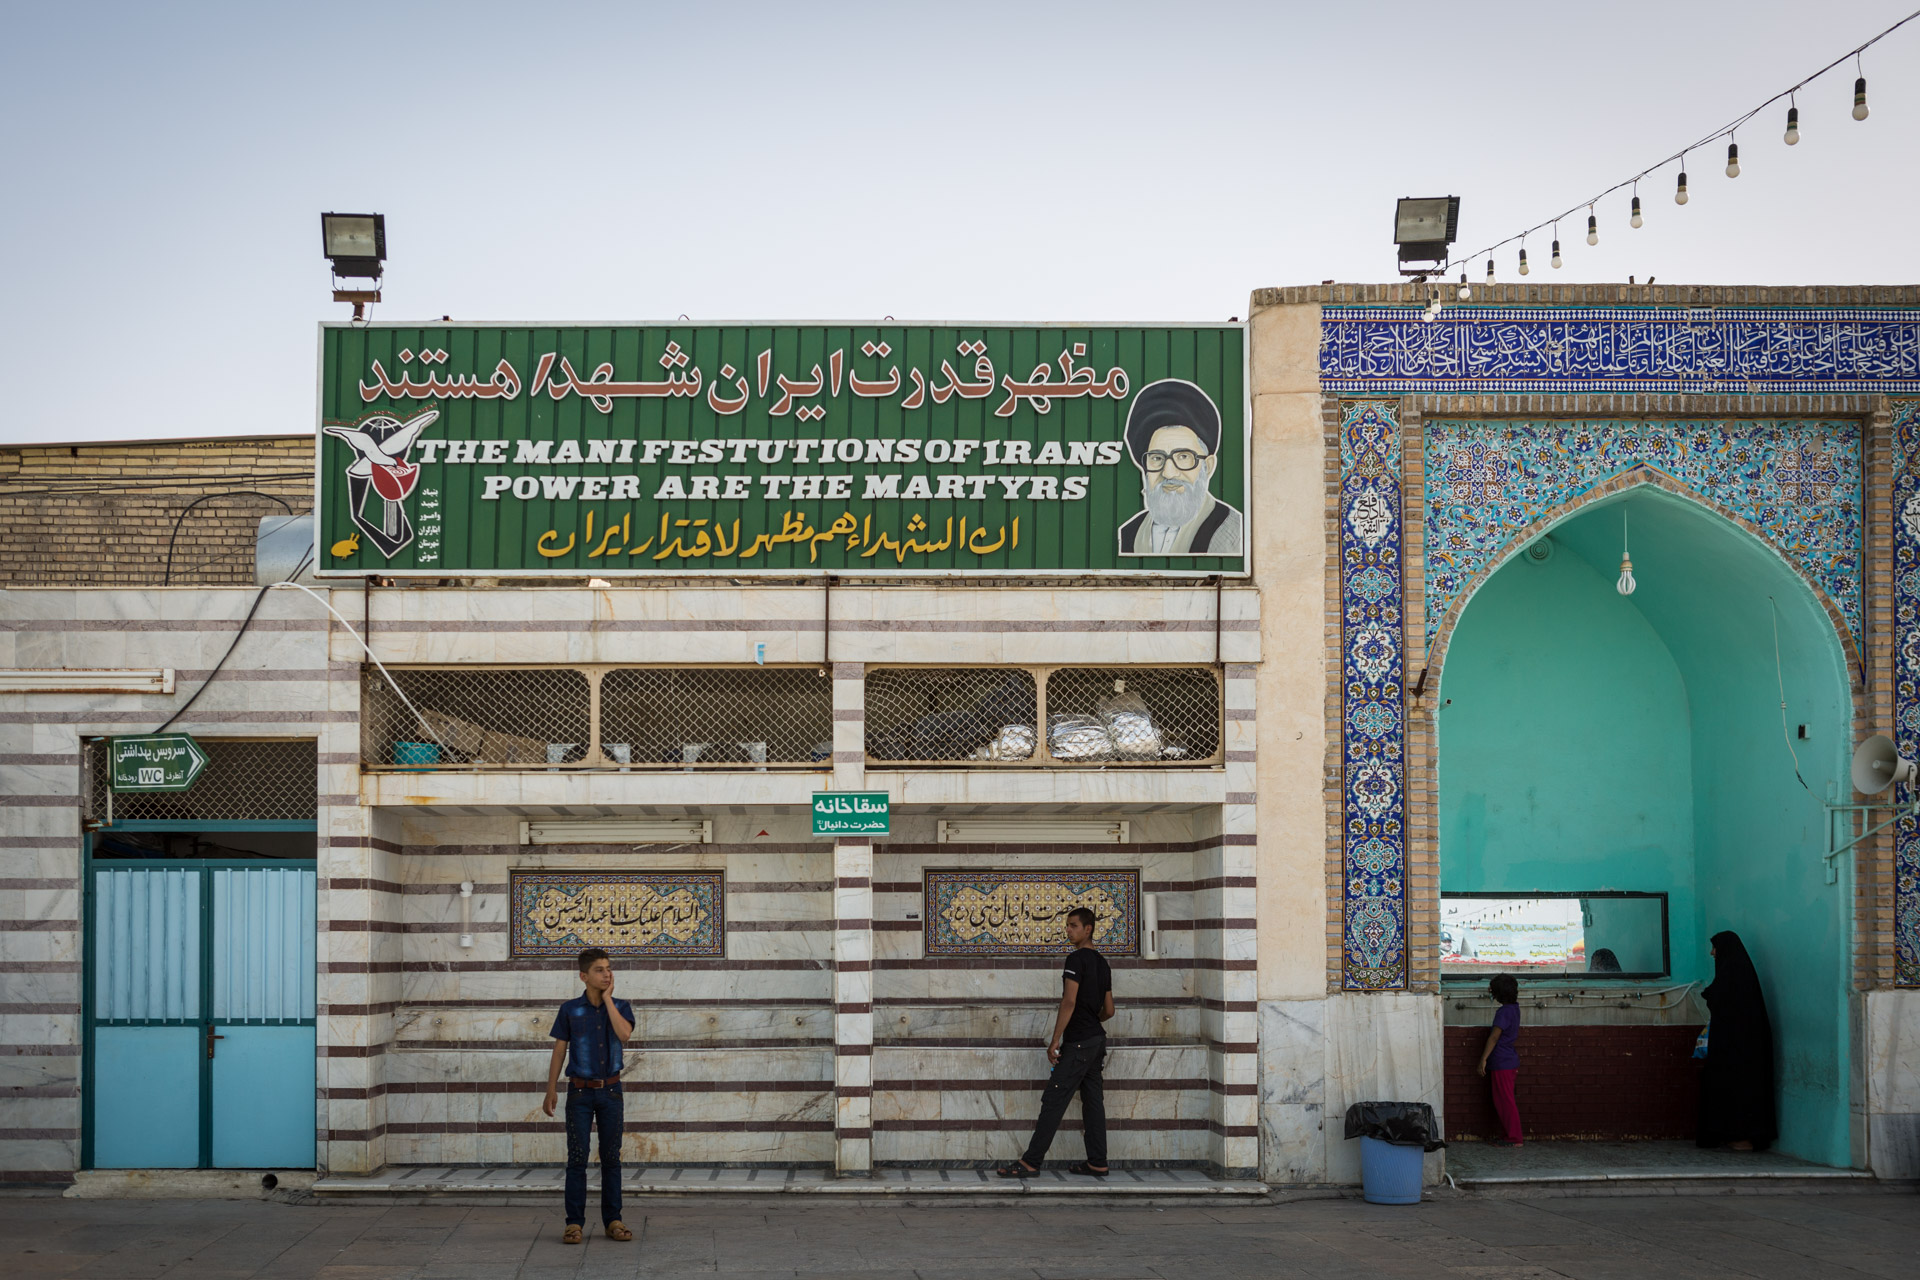 In a religious shrine in the province of Khuzestan, close to the former frontline, a billboard promotes martyrdom.